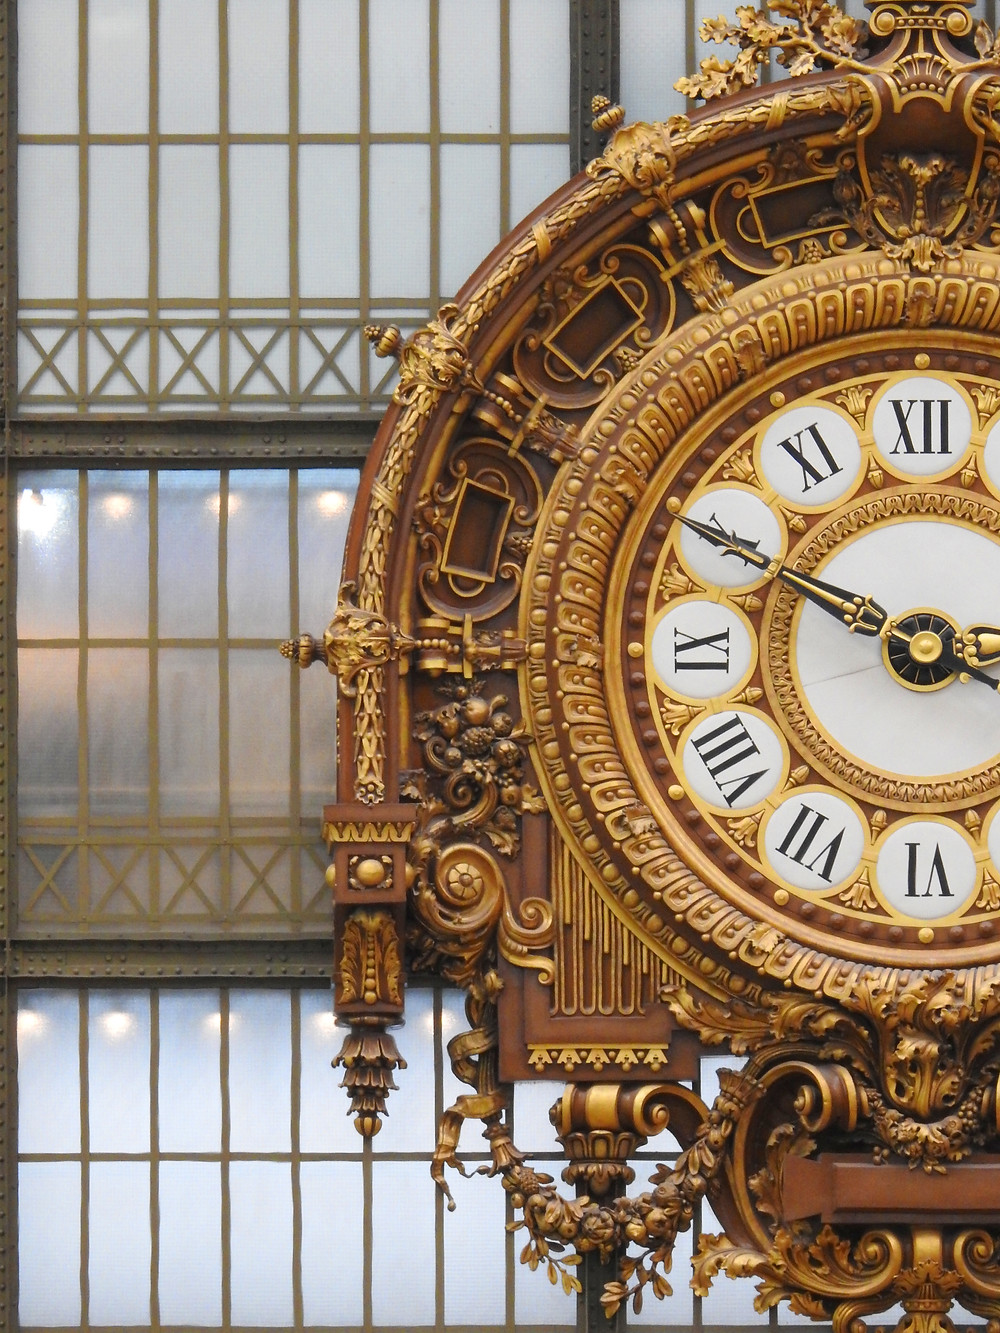 the iconic grand clock of the Musee d'Orsay, a leftover from its previous incarnation as a train station